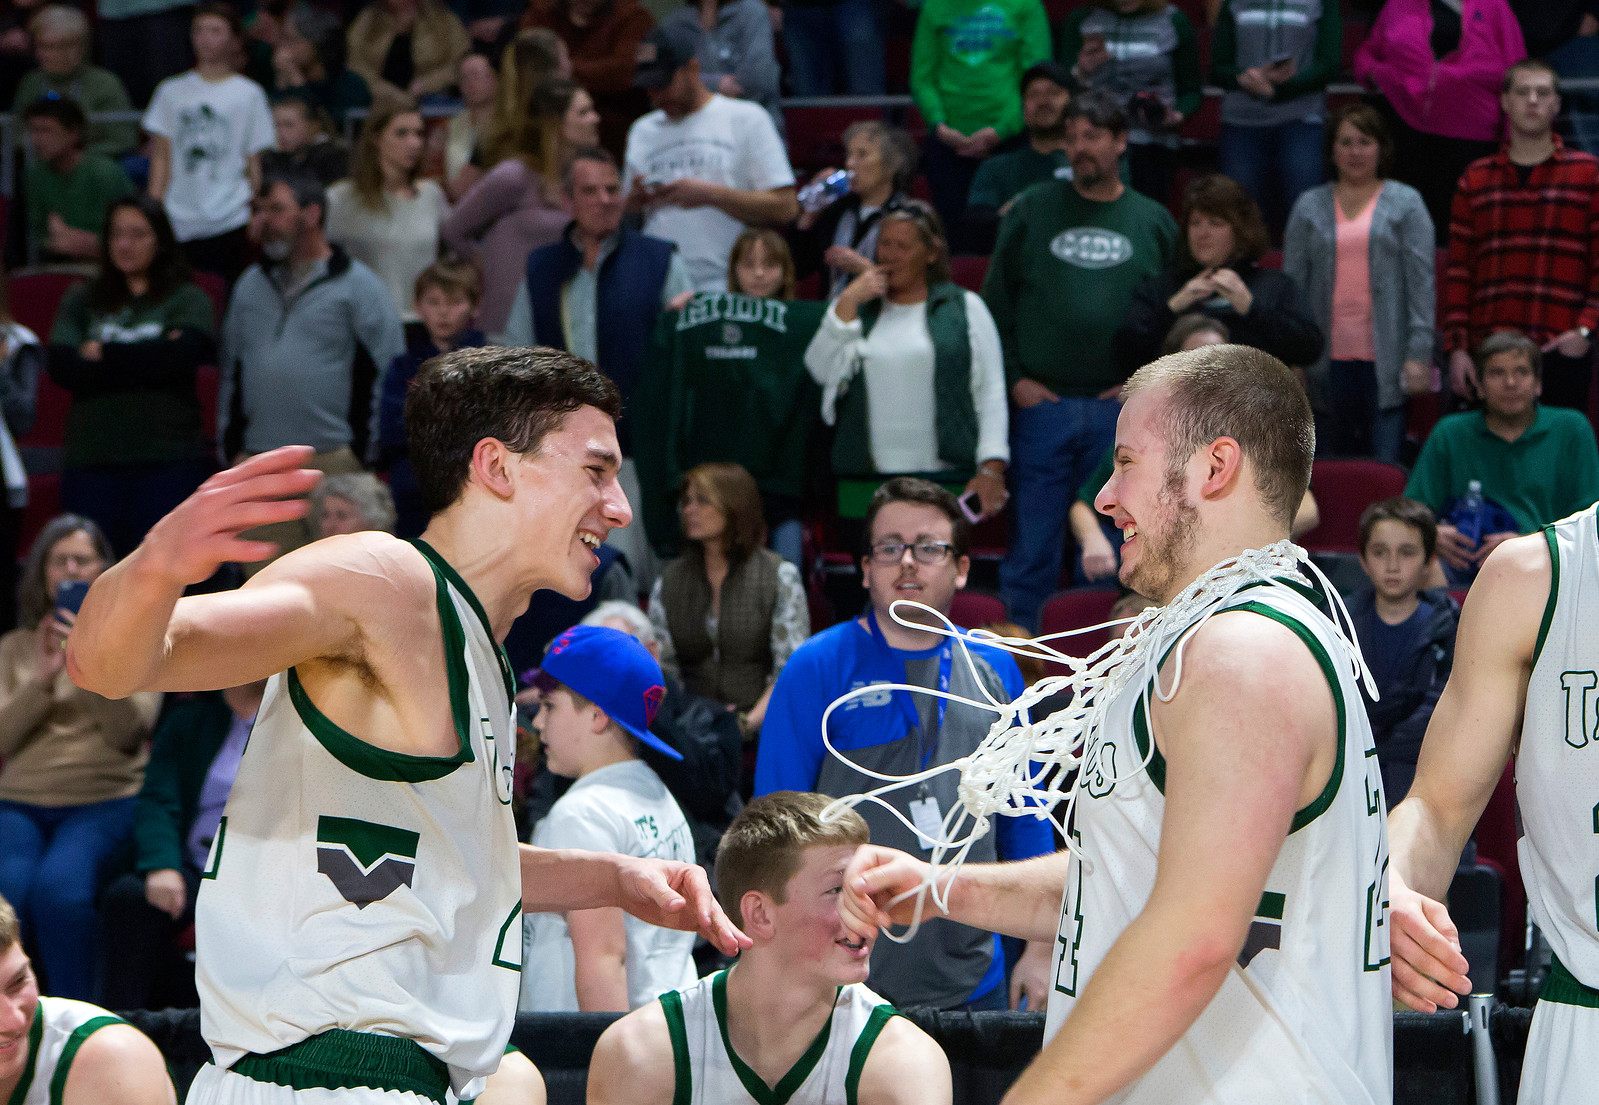 BANGOR, Maine -- 02/25/2017 -- Mount Desert Island's Devin M. Parlatore (left) goes to embrace Mount Desert Island's Aaron Snurkowski after defeating Orono during their Class B boys basketball championship game at the Cross Insurance Center in Bangor Saturday. Ashley L. Conti | BDN